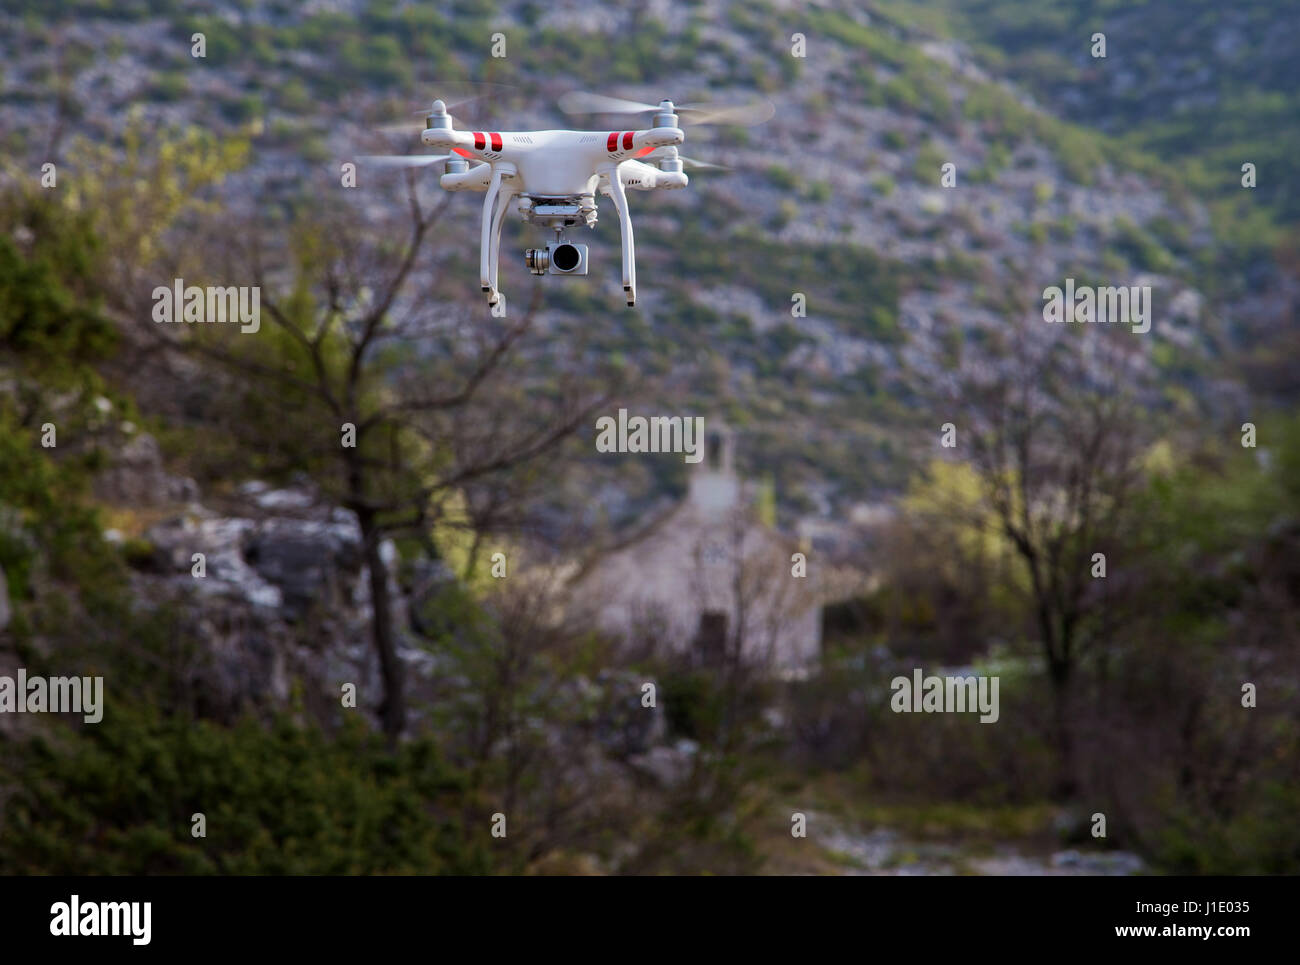 Drone in action - Stock Image